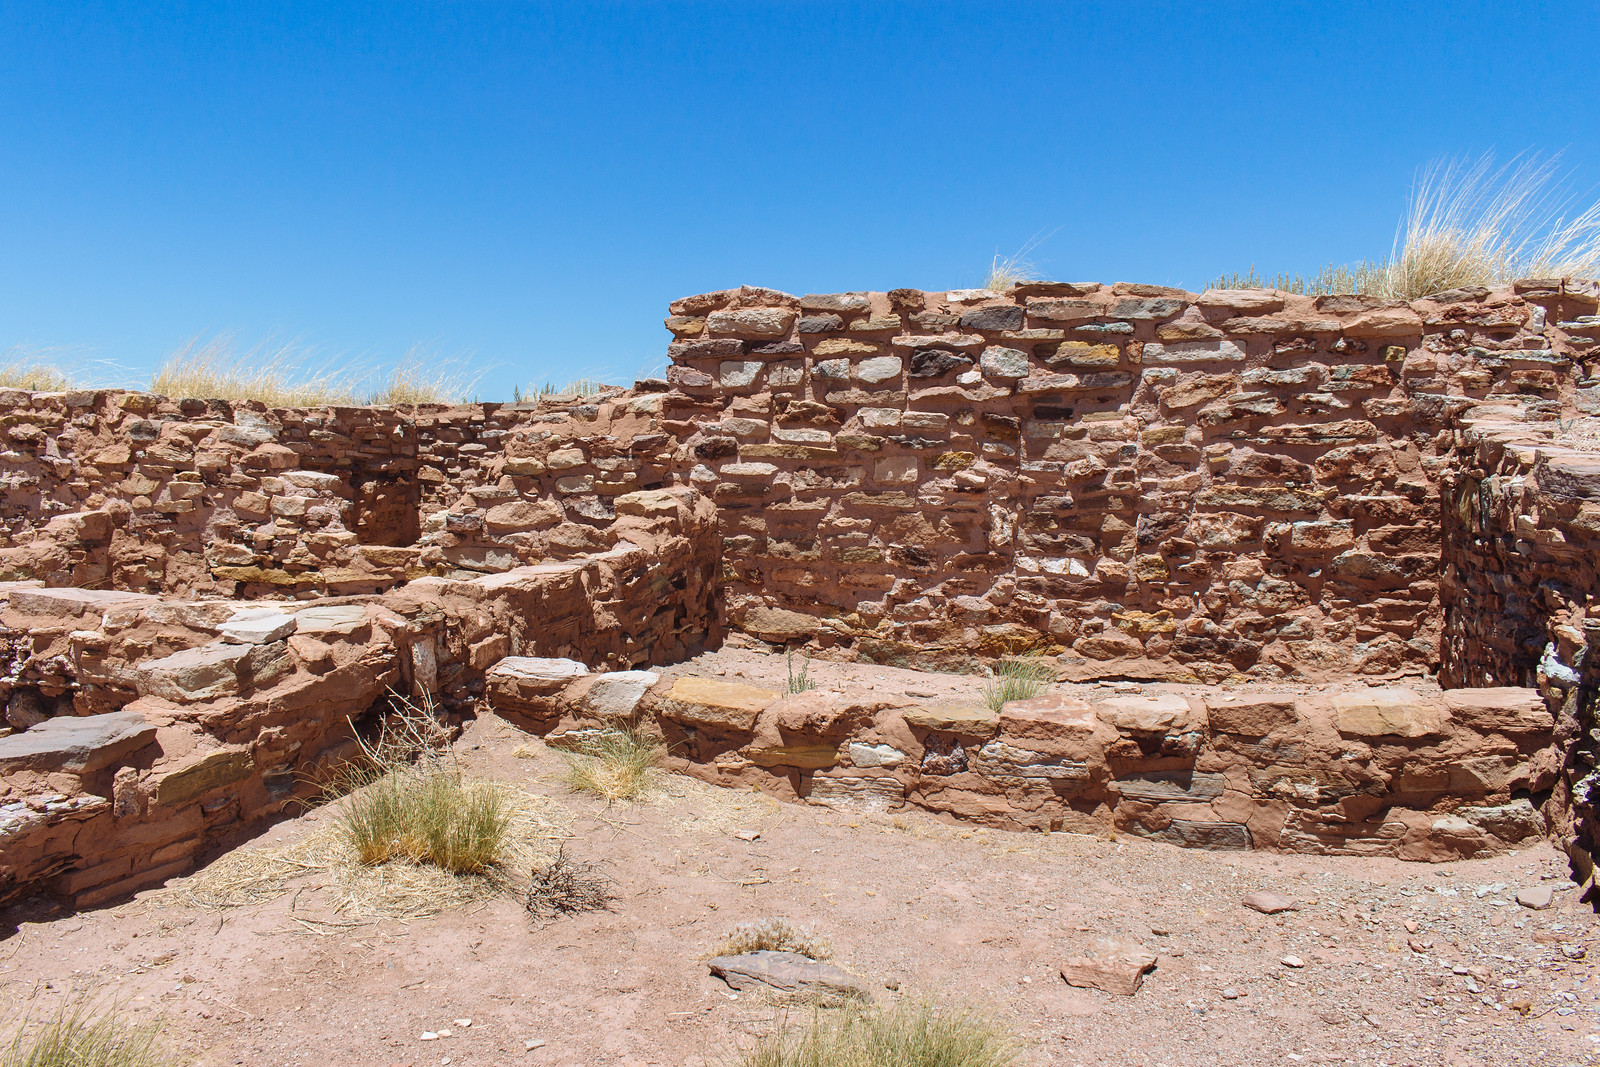 Low walls made of stone at Homolovi State Park in Arizona